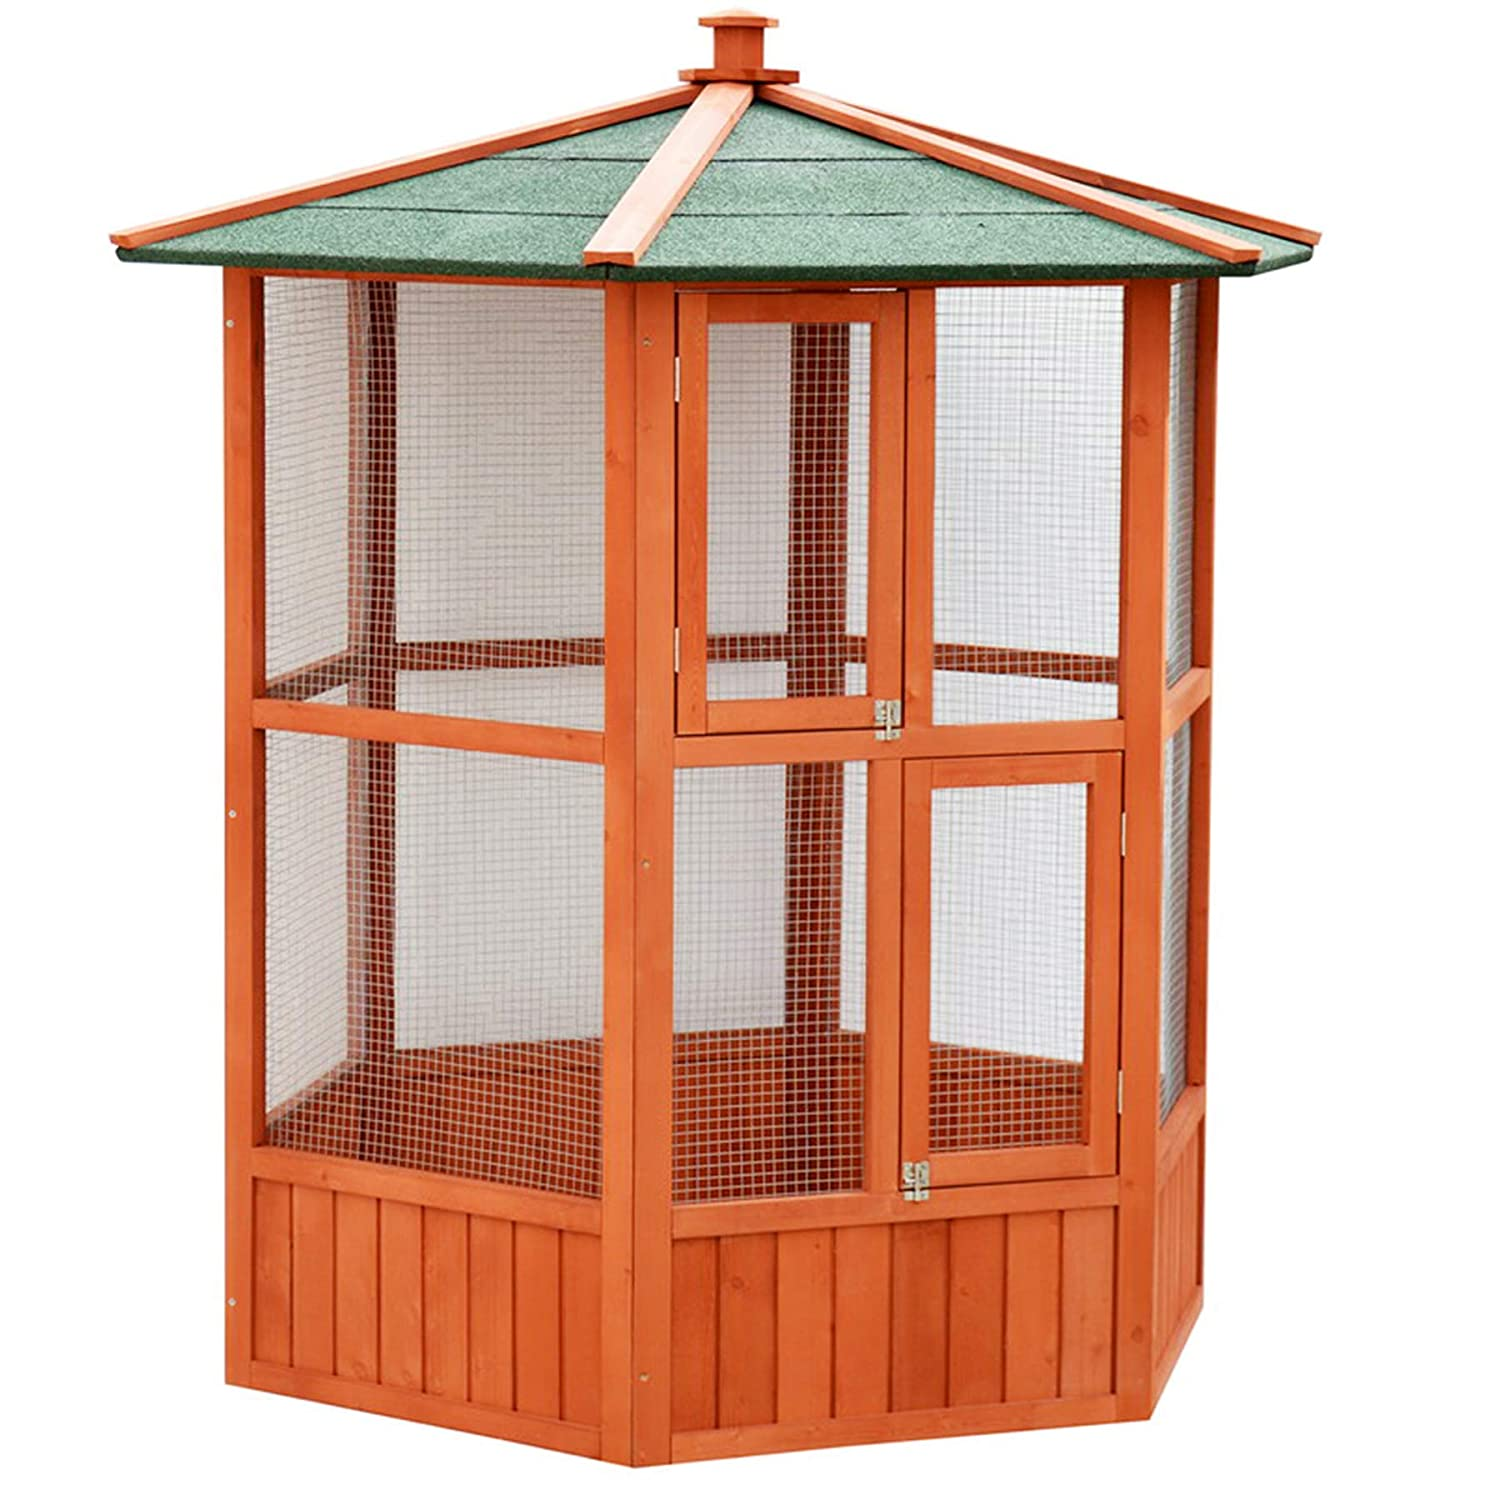 KCT Brazil Outdoor Hexagonal Bird Aviary with Durable Asphalt Roof